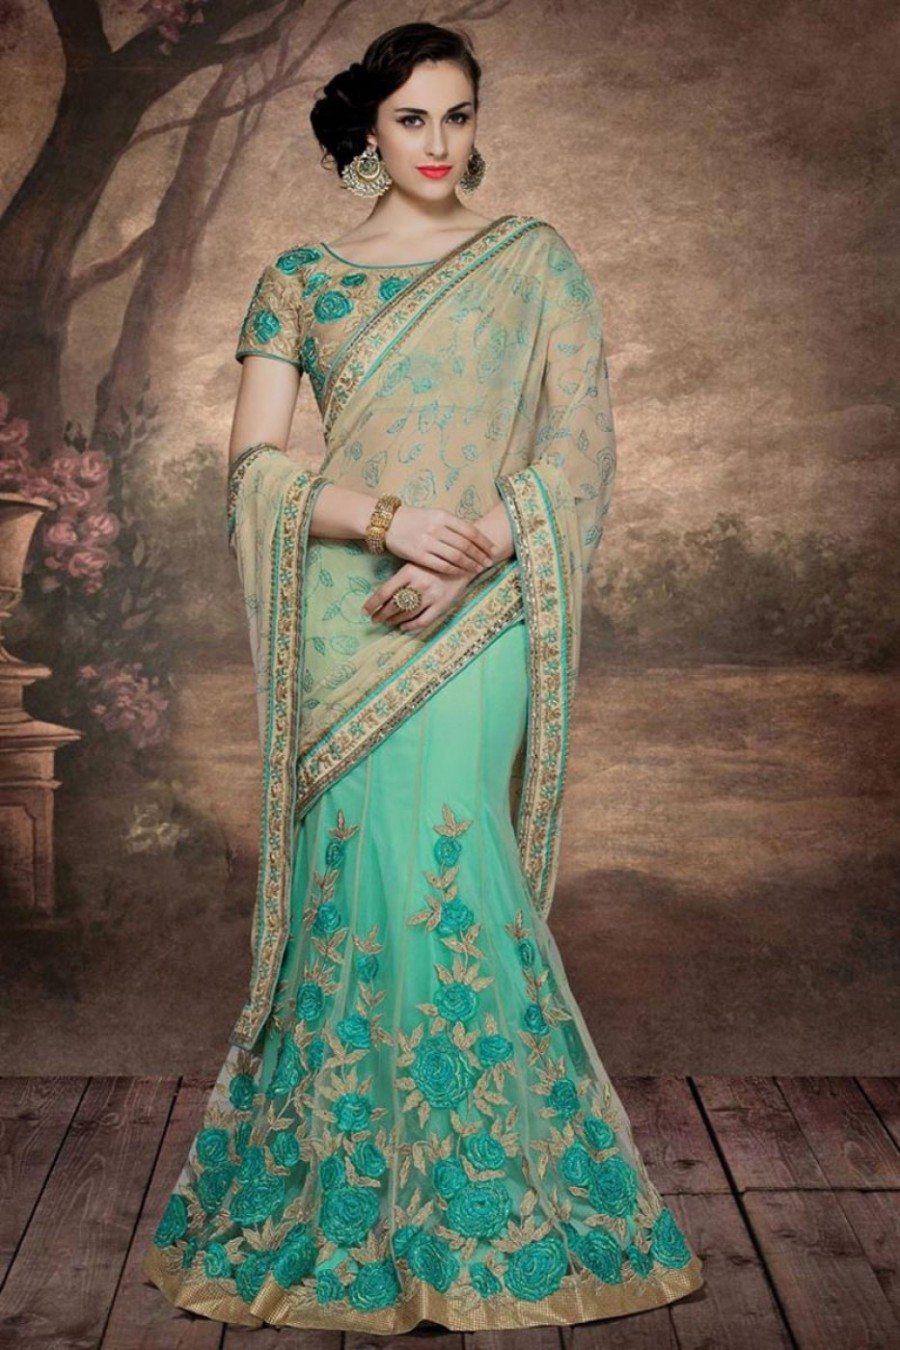 7ac5dfc6a0 Buy Beige And Sea Green Colour Designer Net Chiffon Fabric Embroidered  Lehenga Style Saree Online